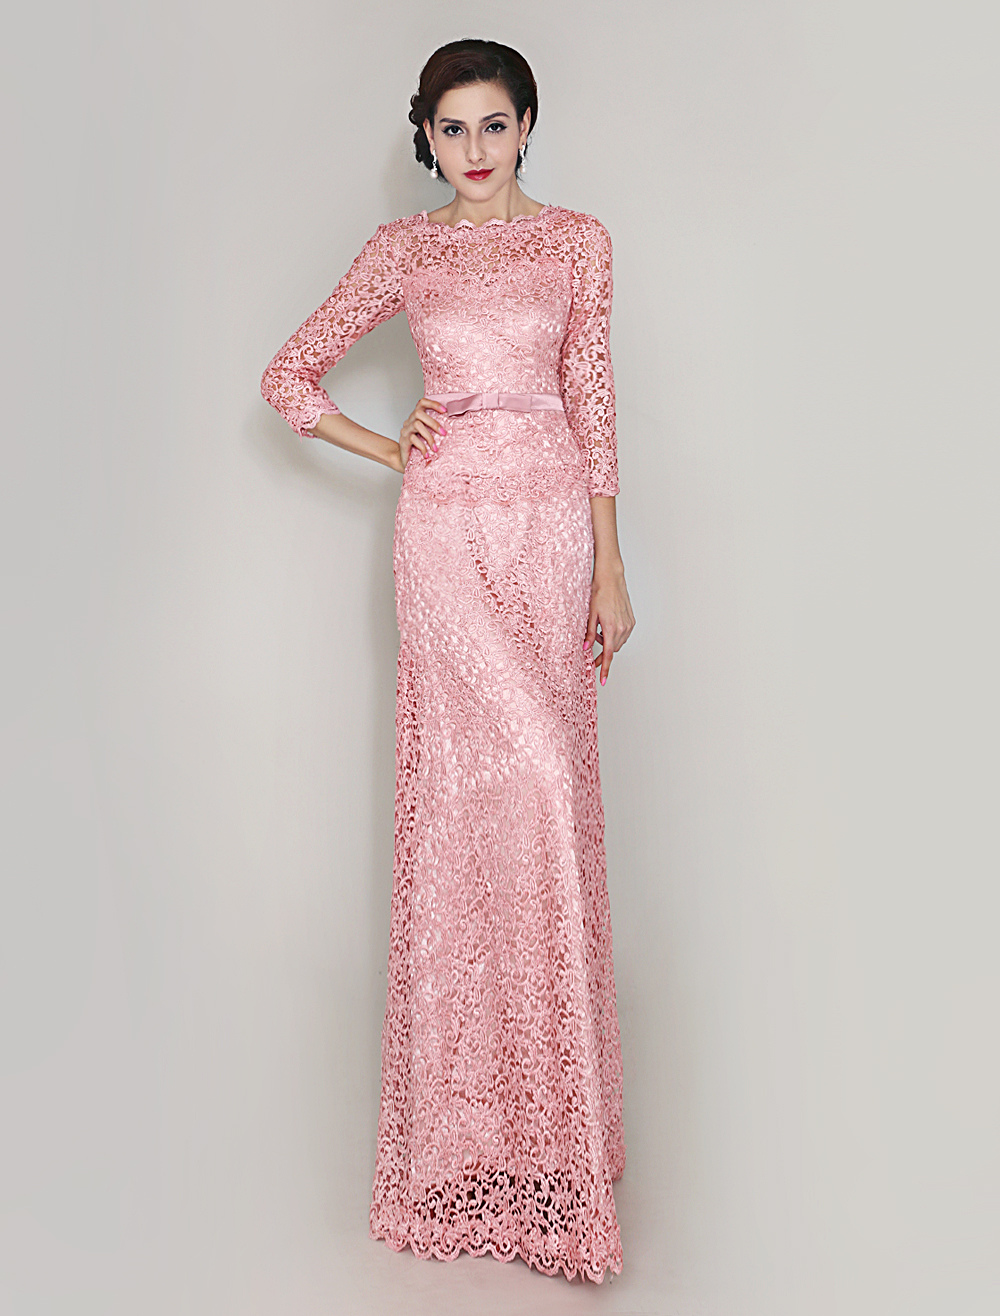 Pink Sheath Lace Dress For Mother of Bride